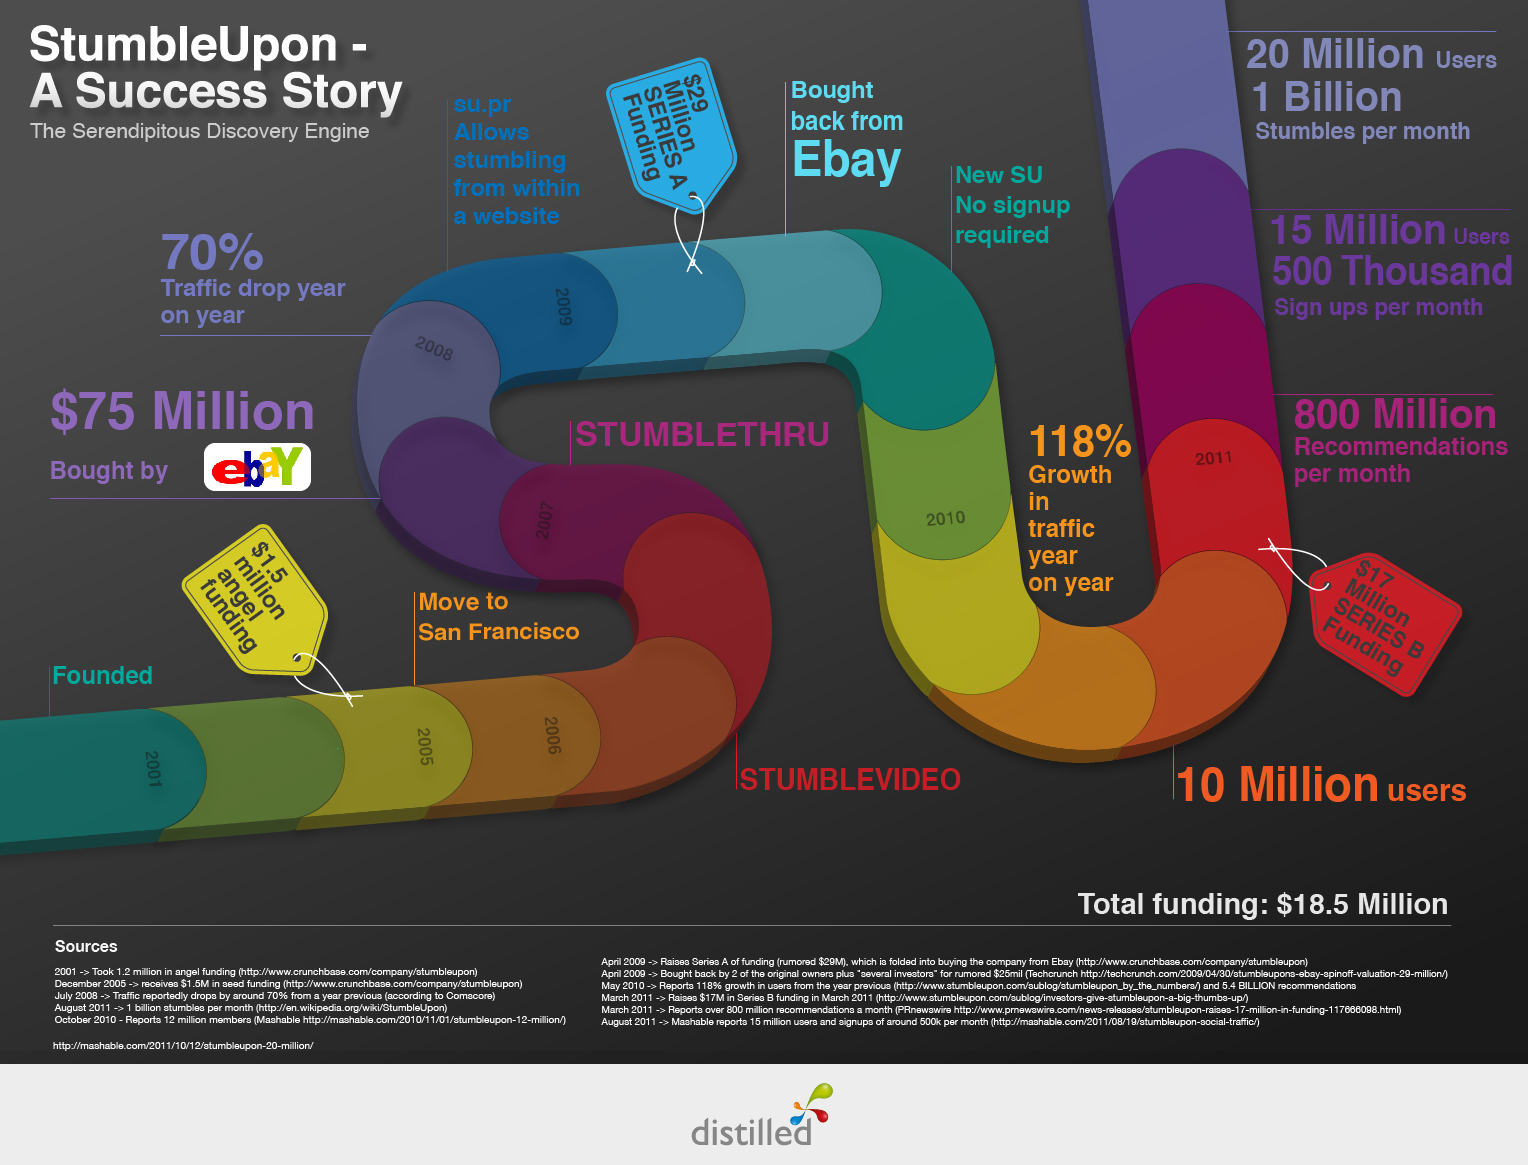 History of StumbleUpon